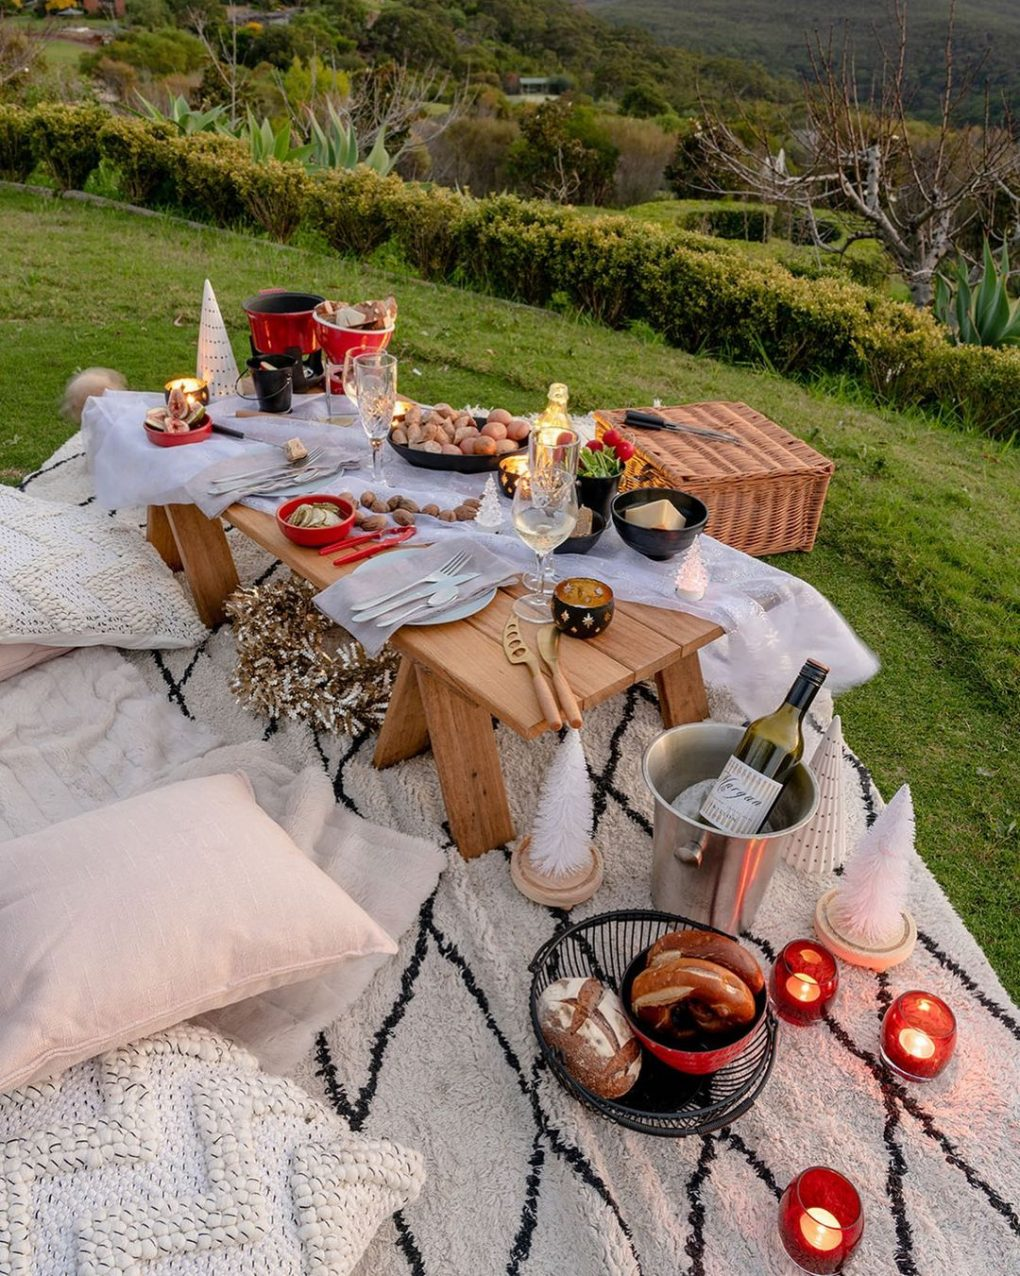 cozy picnic blanket for cold weather